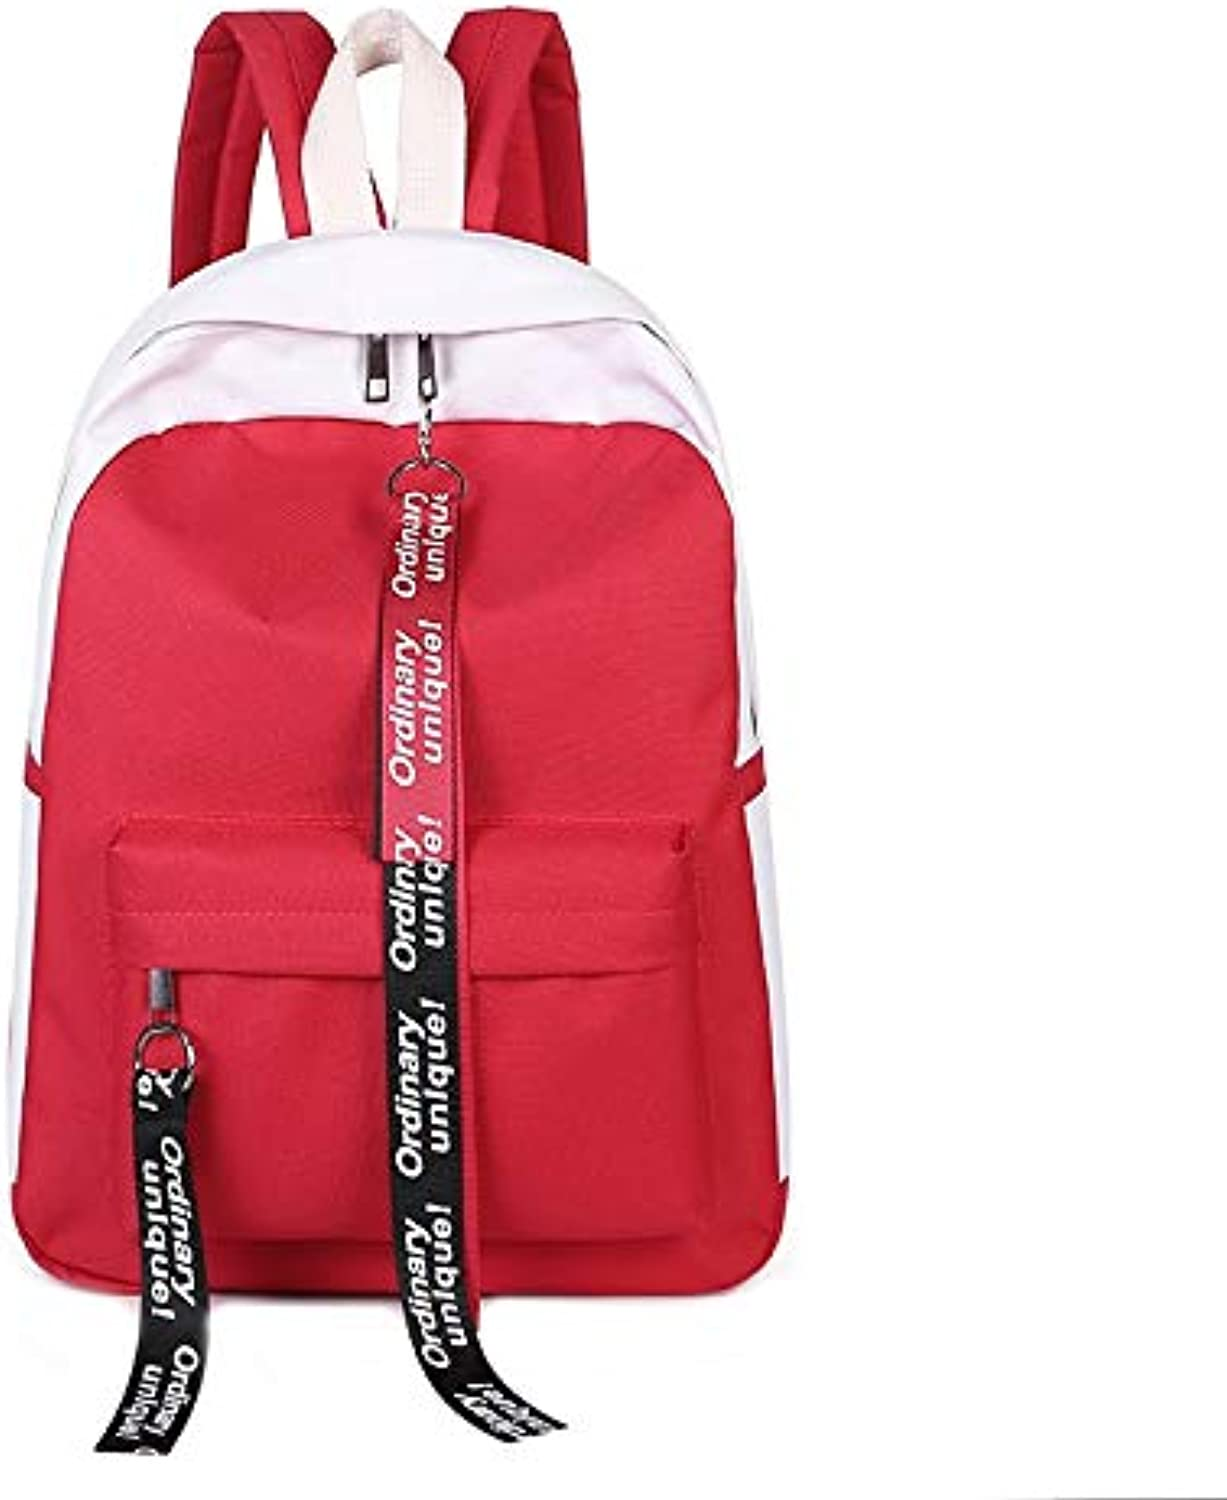 TONGSH Unisex Korean Version of The Bag Trend Fashion Student School Bag Personality Wild Casual Daypack Double Shoulder Backpack Waterproof Travel Rucksack (color   RED)